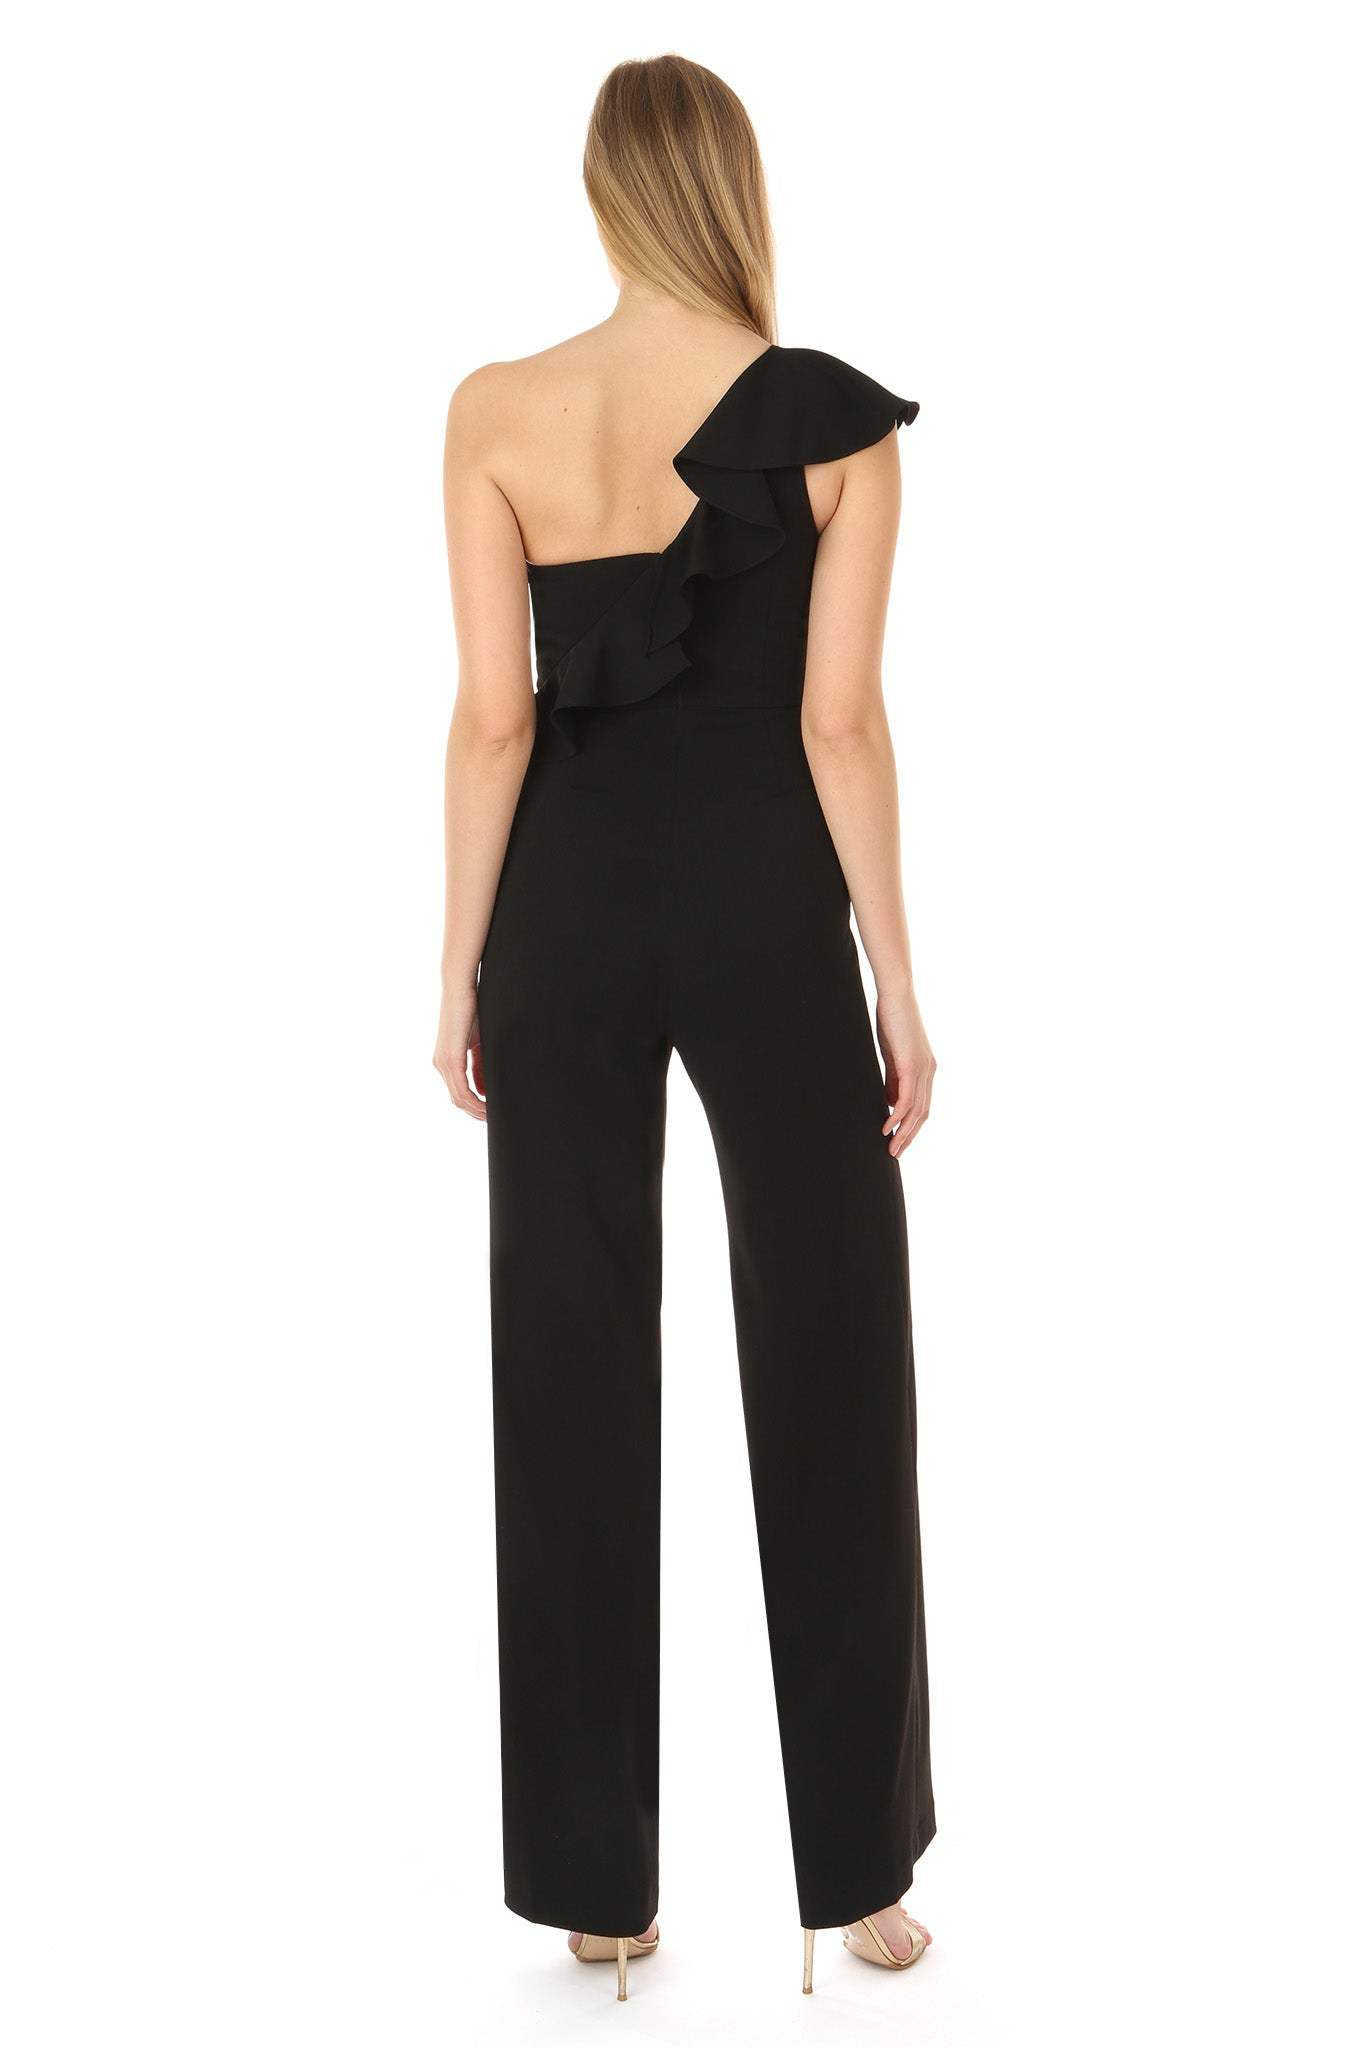 MEREEN BLACK JUMPSUIT